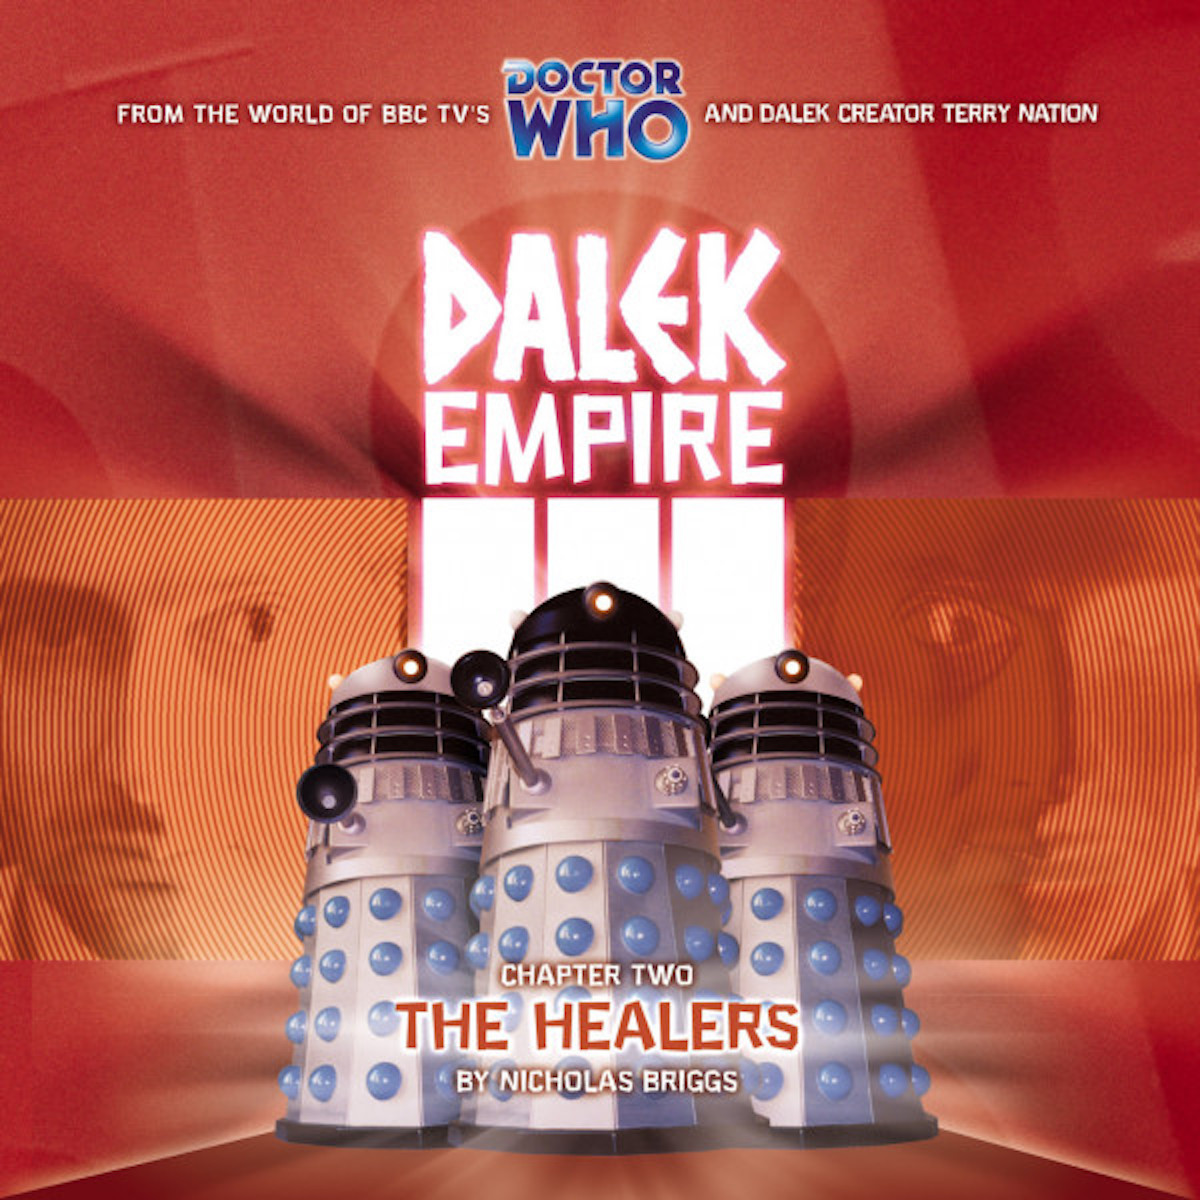 Dalek Empire The Healers